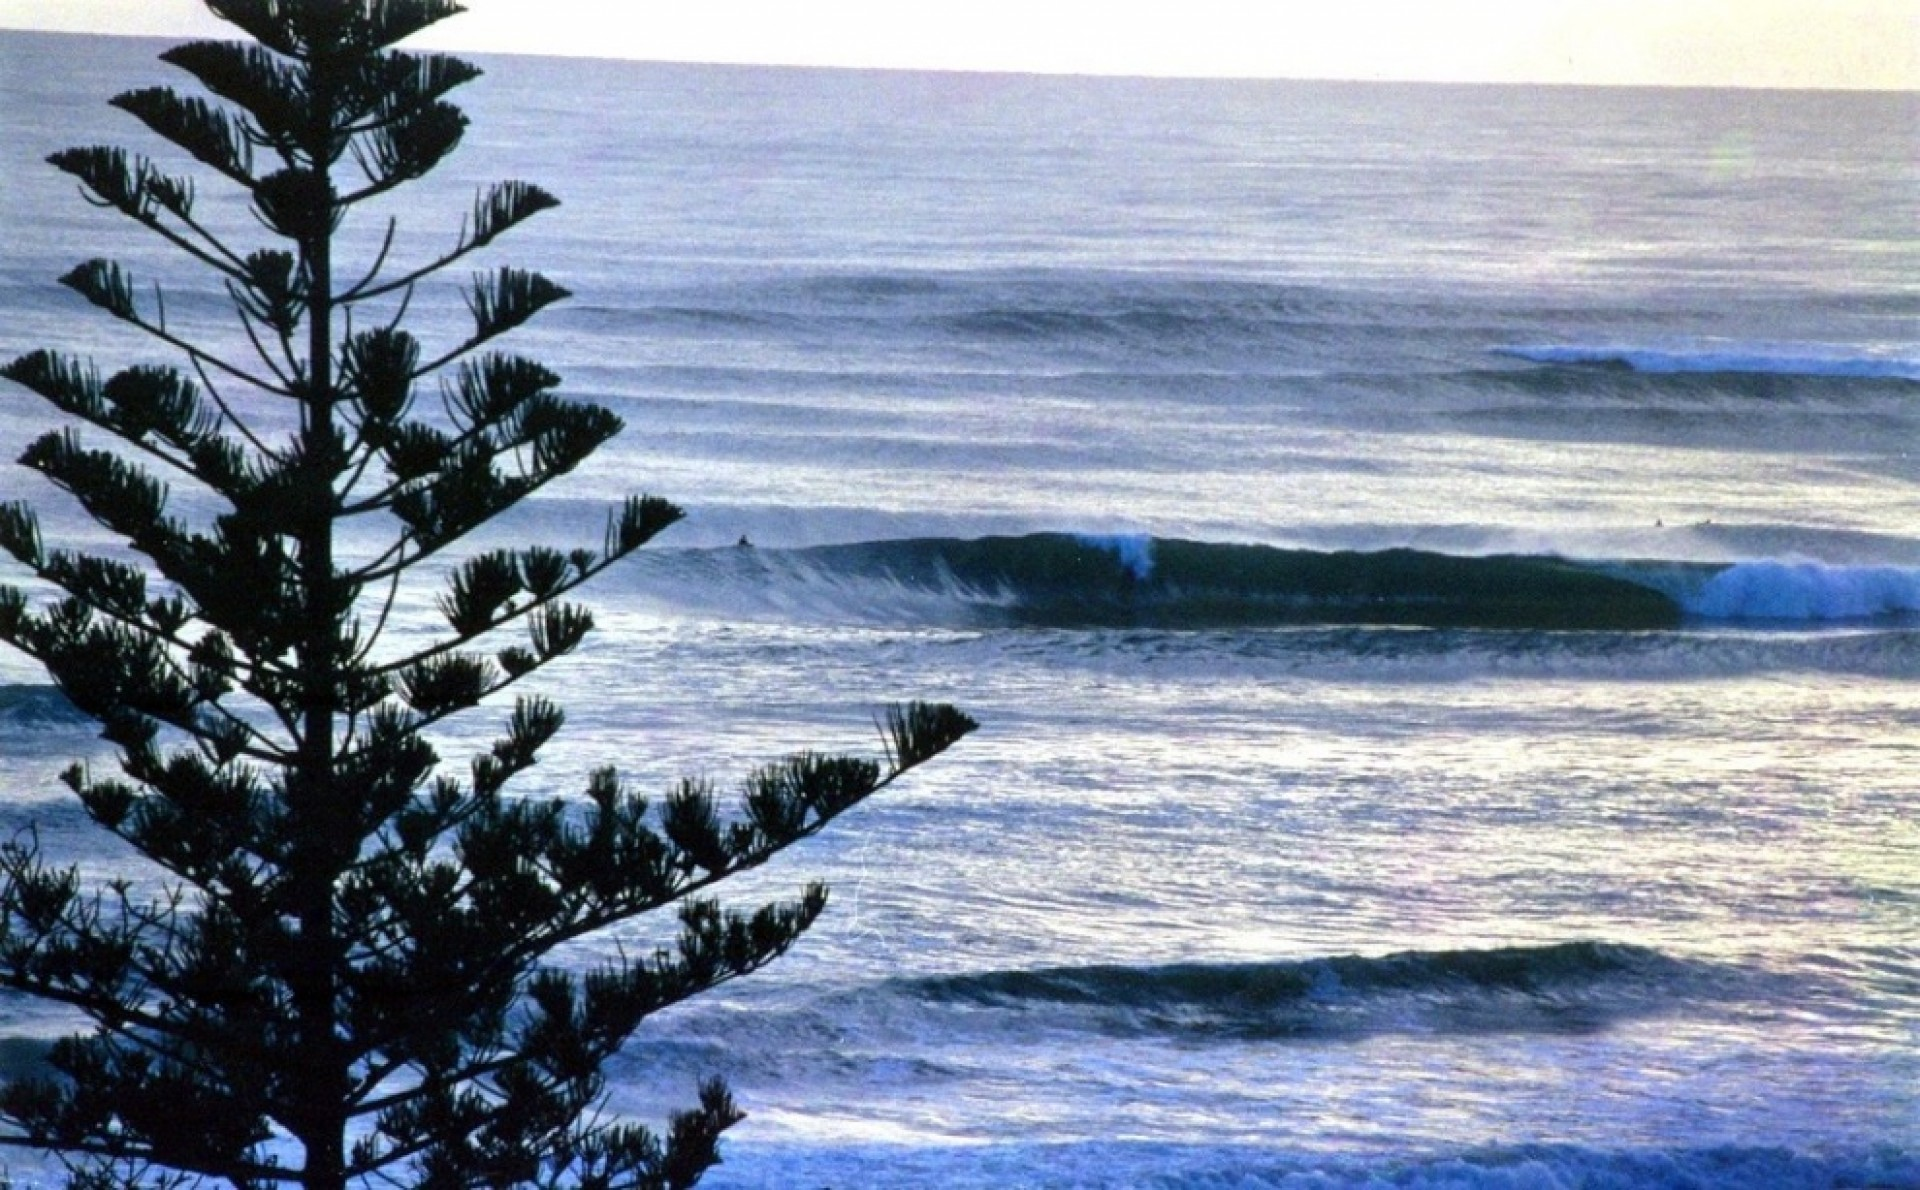 temp38273's photo of Snapper Rocks